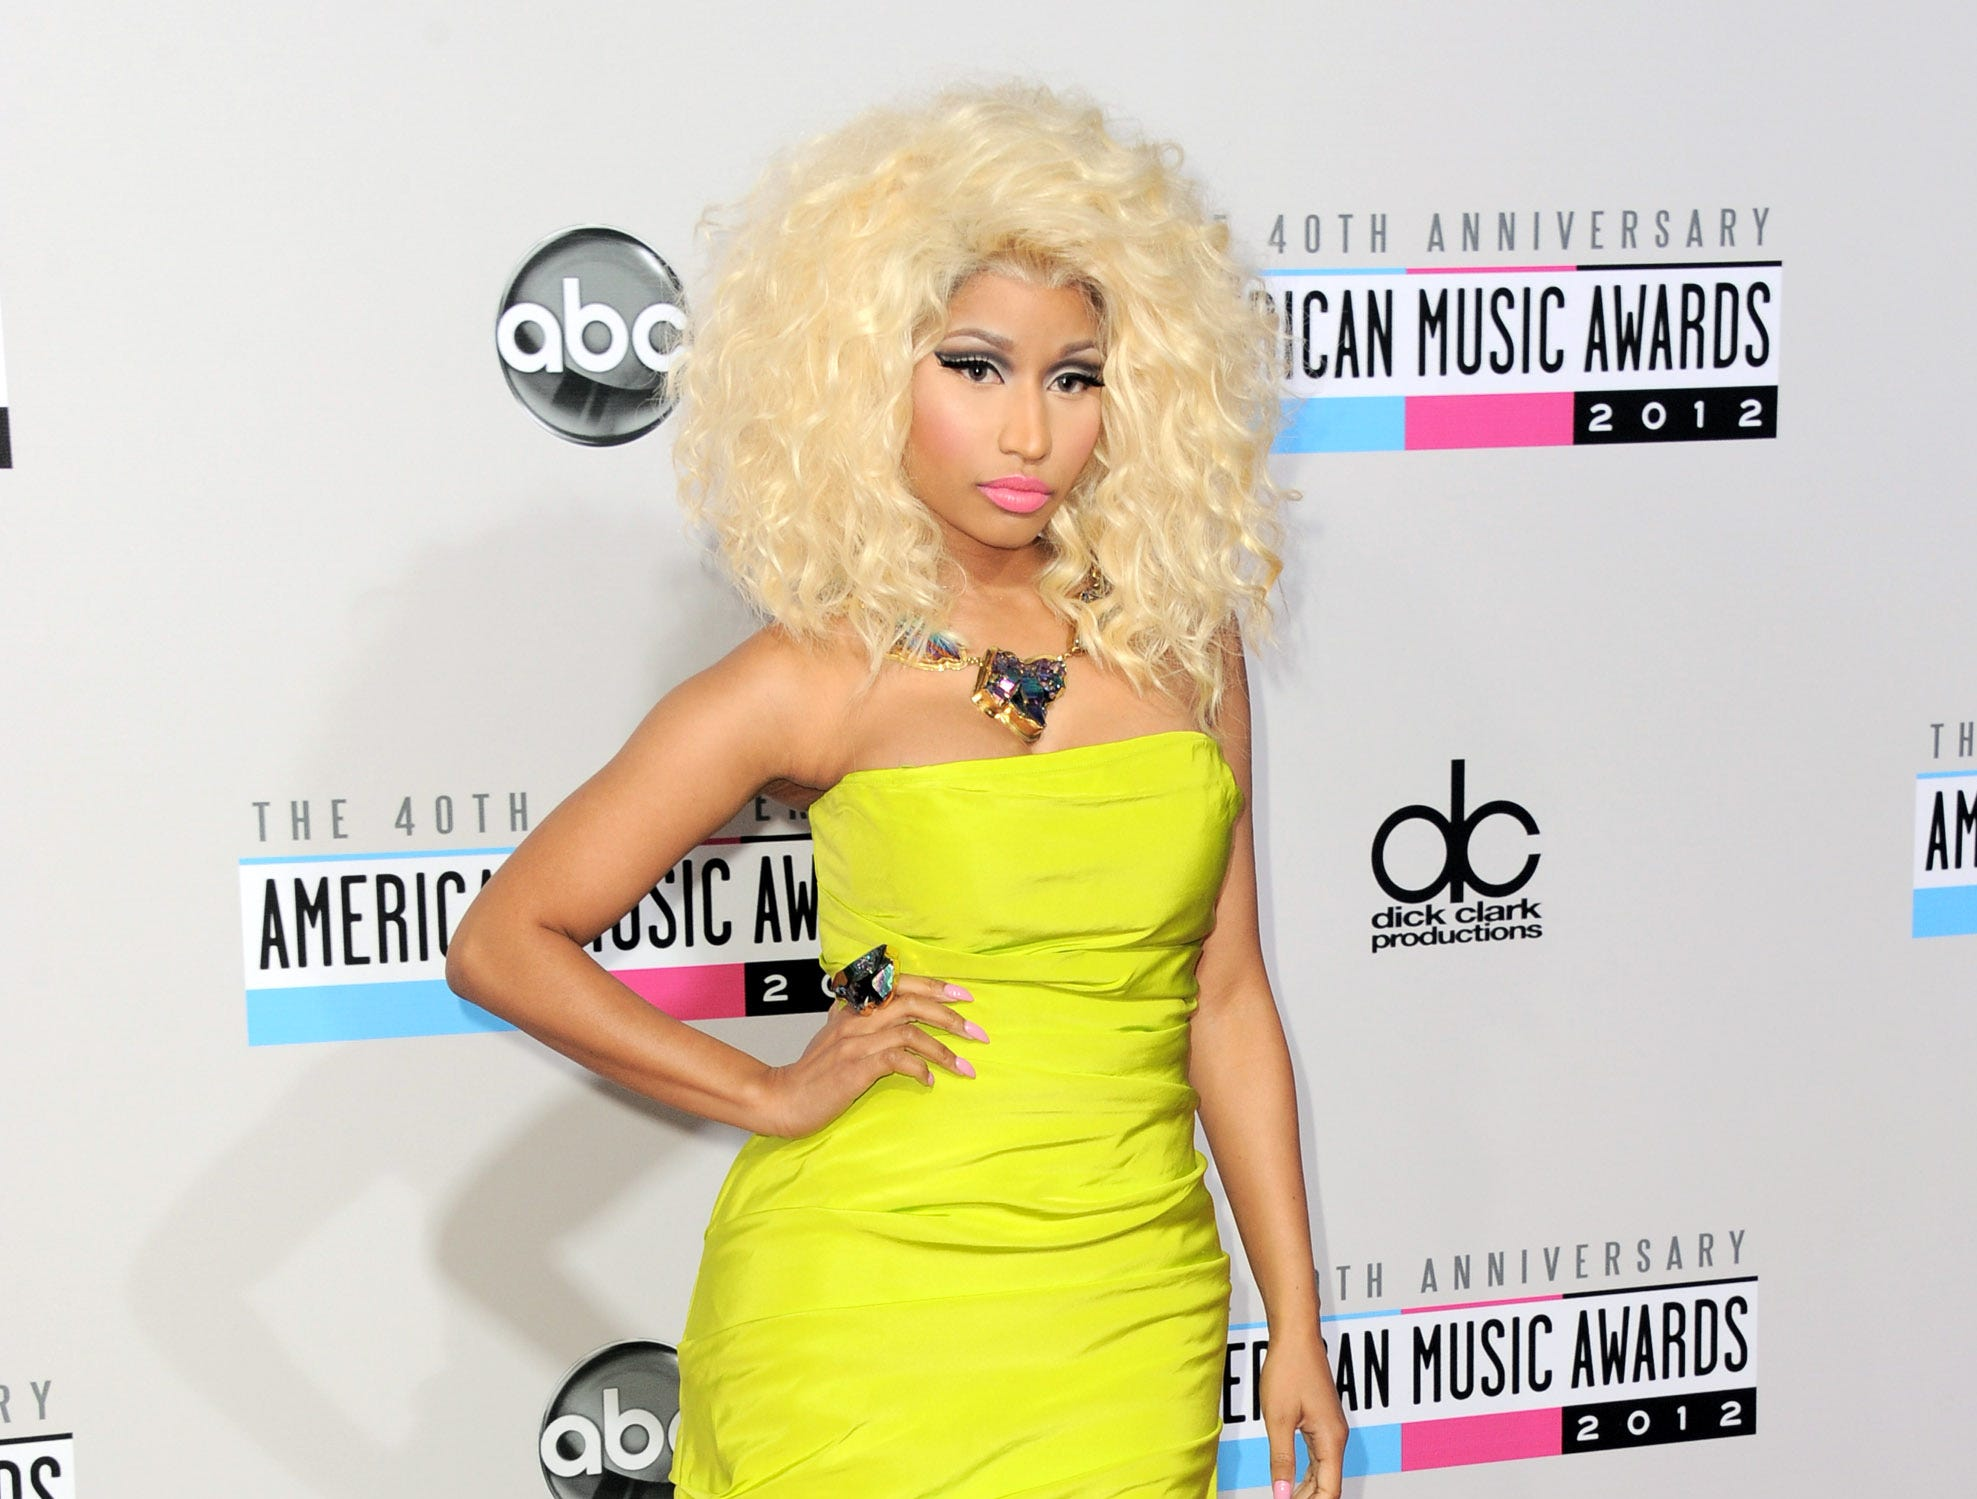 FILE- In this Nov. 18, 2012 file photo, Nicki Minaj arrives at the 40th Anniversary American Music Awards, in Los Angeles.   Despite having a big year in music, Nicki Minaj didn't receive any Grammy nominations. The 30-year-old had one of last year's biggest hits with the multiplatinum dance-pop anthem ìStarships.î Her sophomore album, ìPink Friday: Roman Reloaded,î has reached gold status and launched other hits on the rap and R&B charts. But Minaj was shunned out when the Grammys announced this year's nominees, though the animated performer earned three nominations last year, including best new artist and best rap album for her platinum debut, ìPink Friday.î (Photo by Jordan Strauss/Invision/AP, File) ORG XMIT: CAENT588